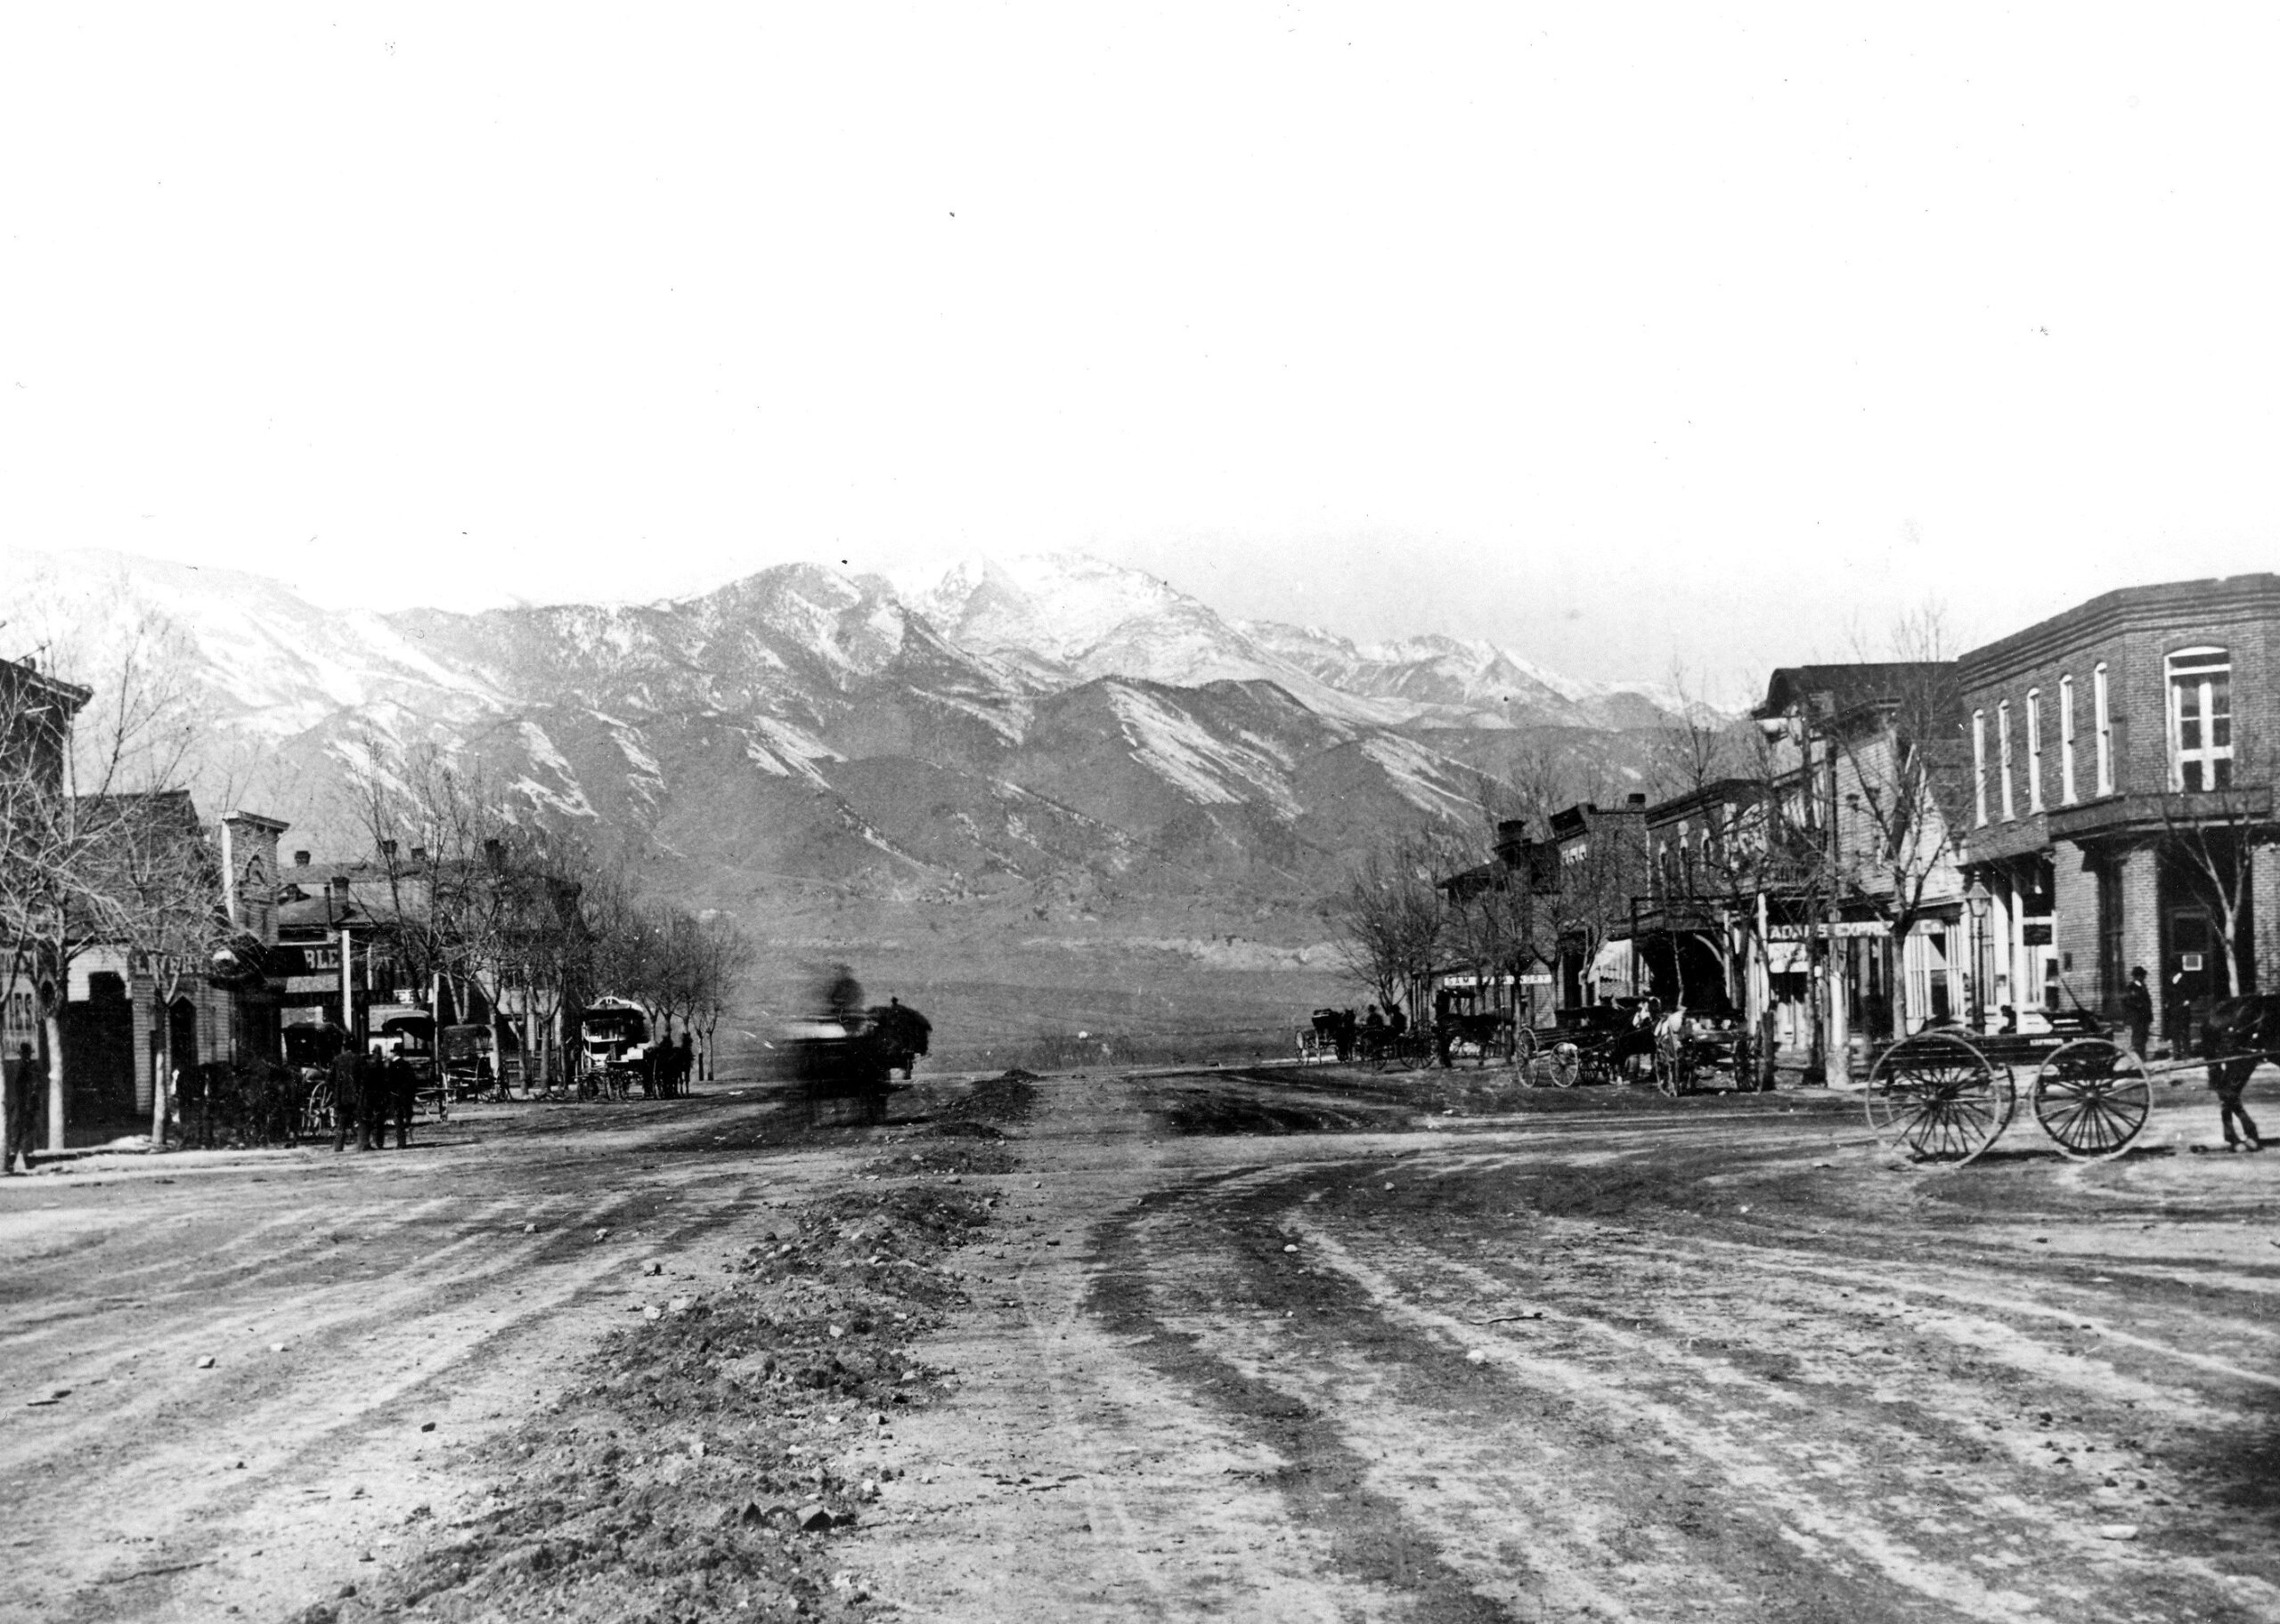 This photograph circa 1875-1880 shows Pikes Peak Avenue before the construction of the first Antler's hotel